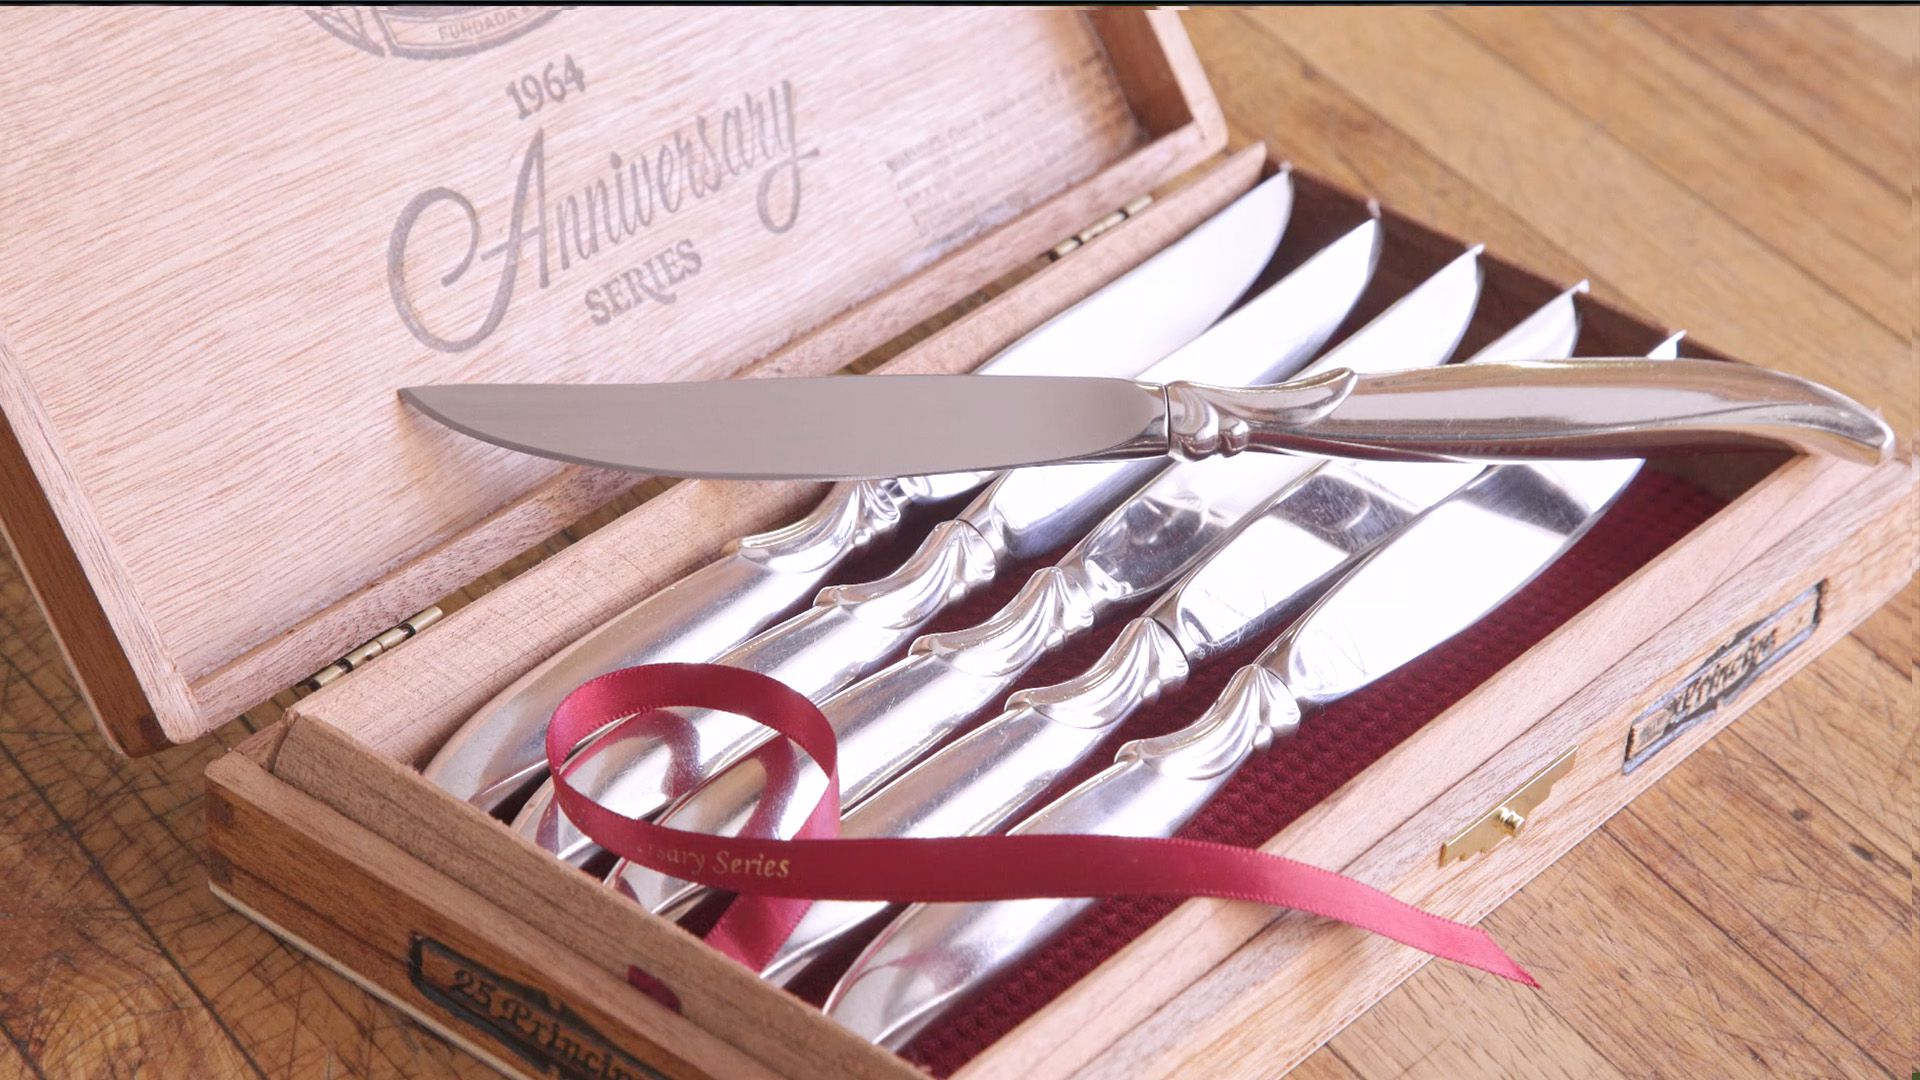 How to (Safely) Transform a Butter Knife into a Steak Knife